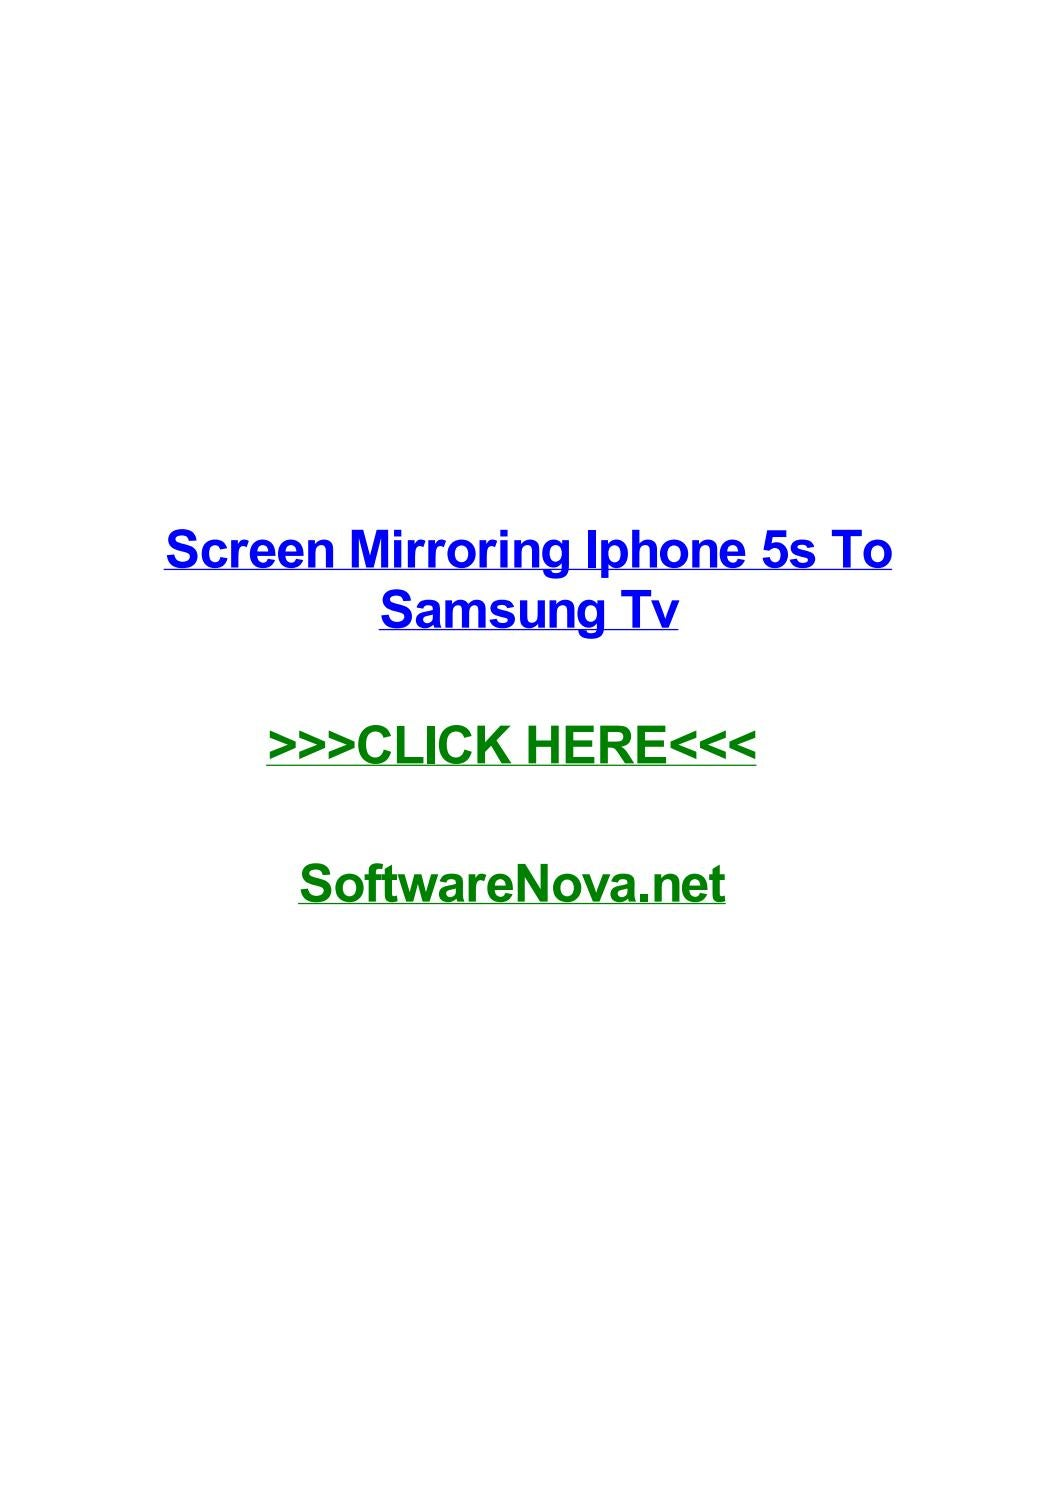 Screen mirroring iphone 5s to samsung tv by billyhjqe - issuu